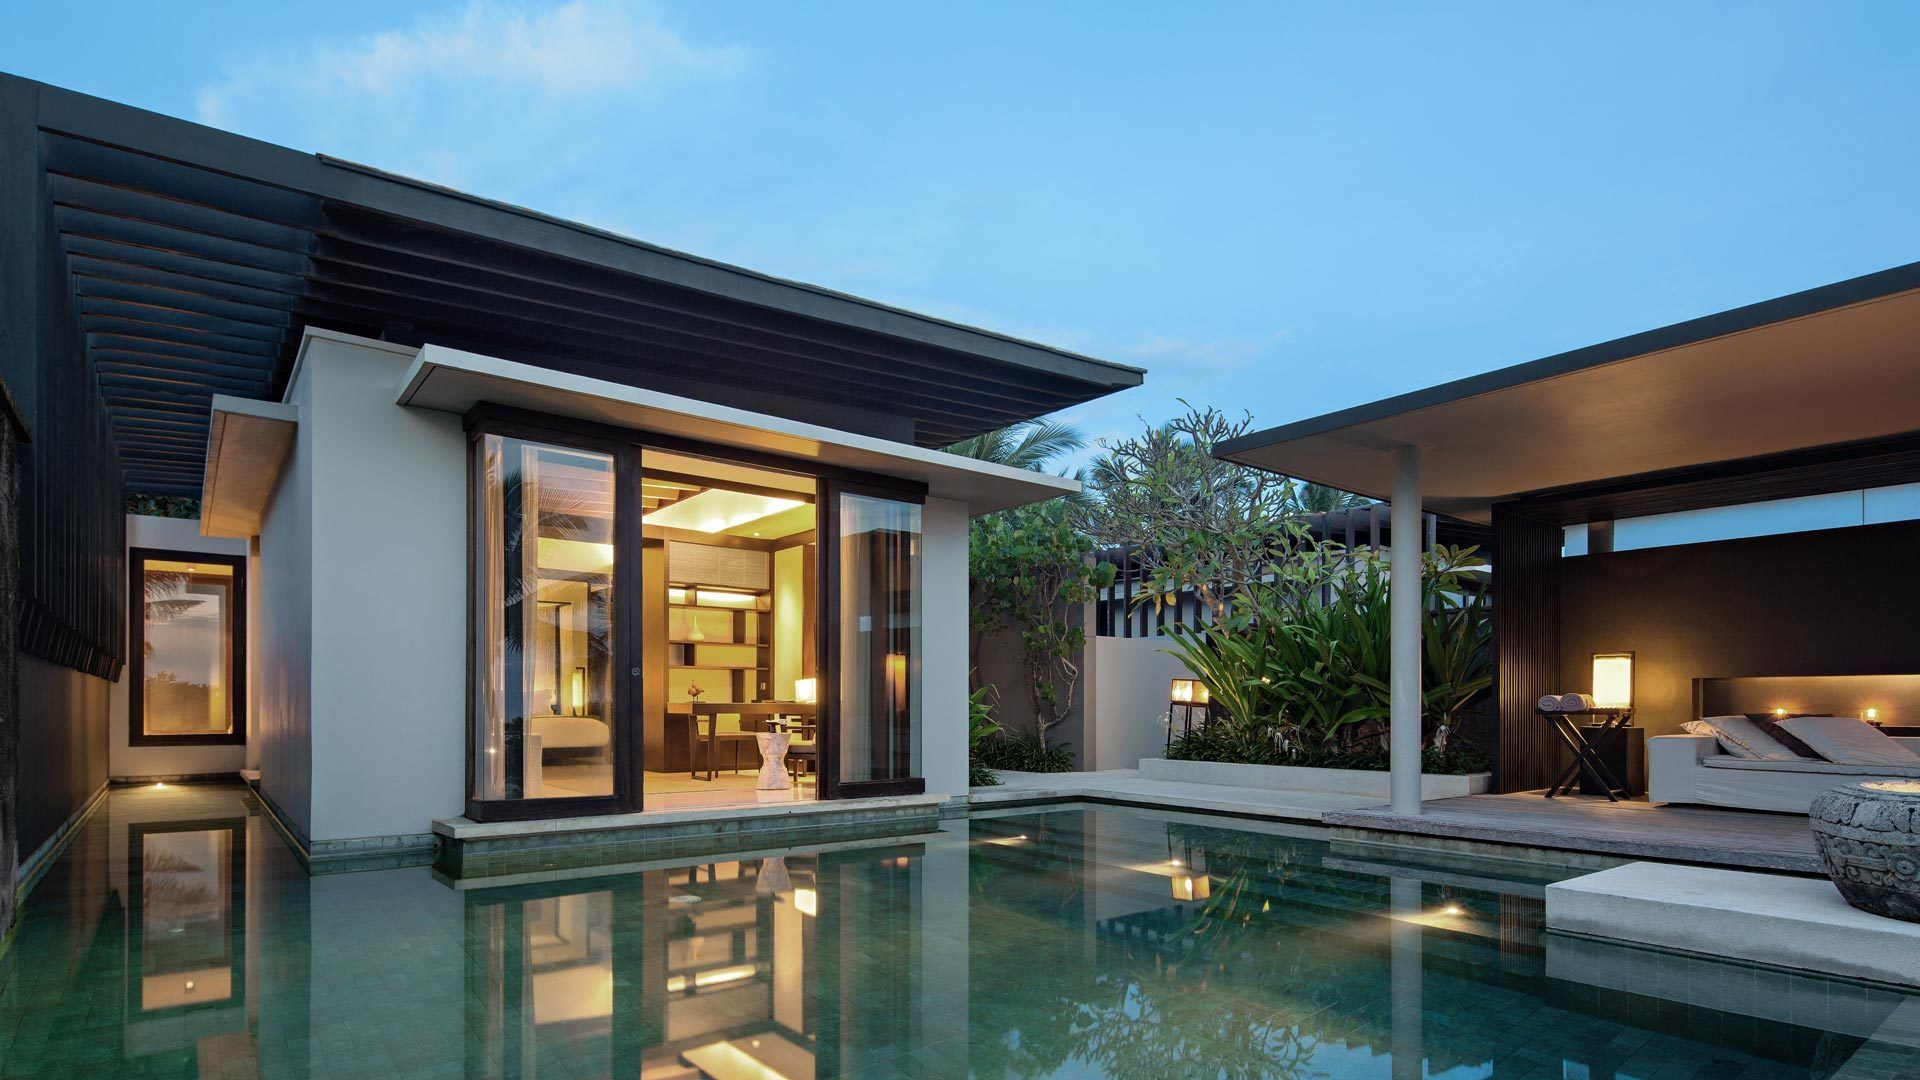 A Modern Bali Resort Thats Inspired by the Local Landscape and